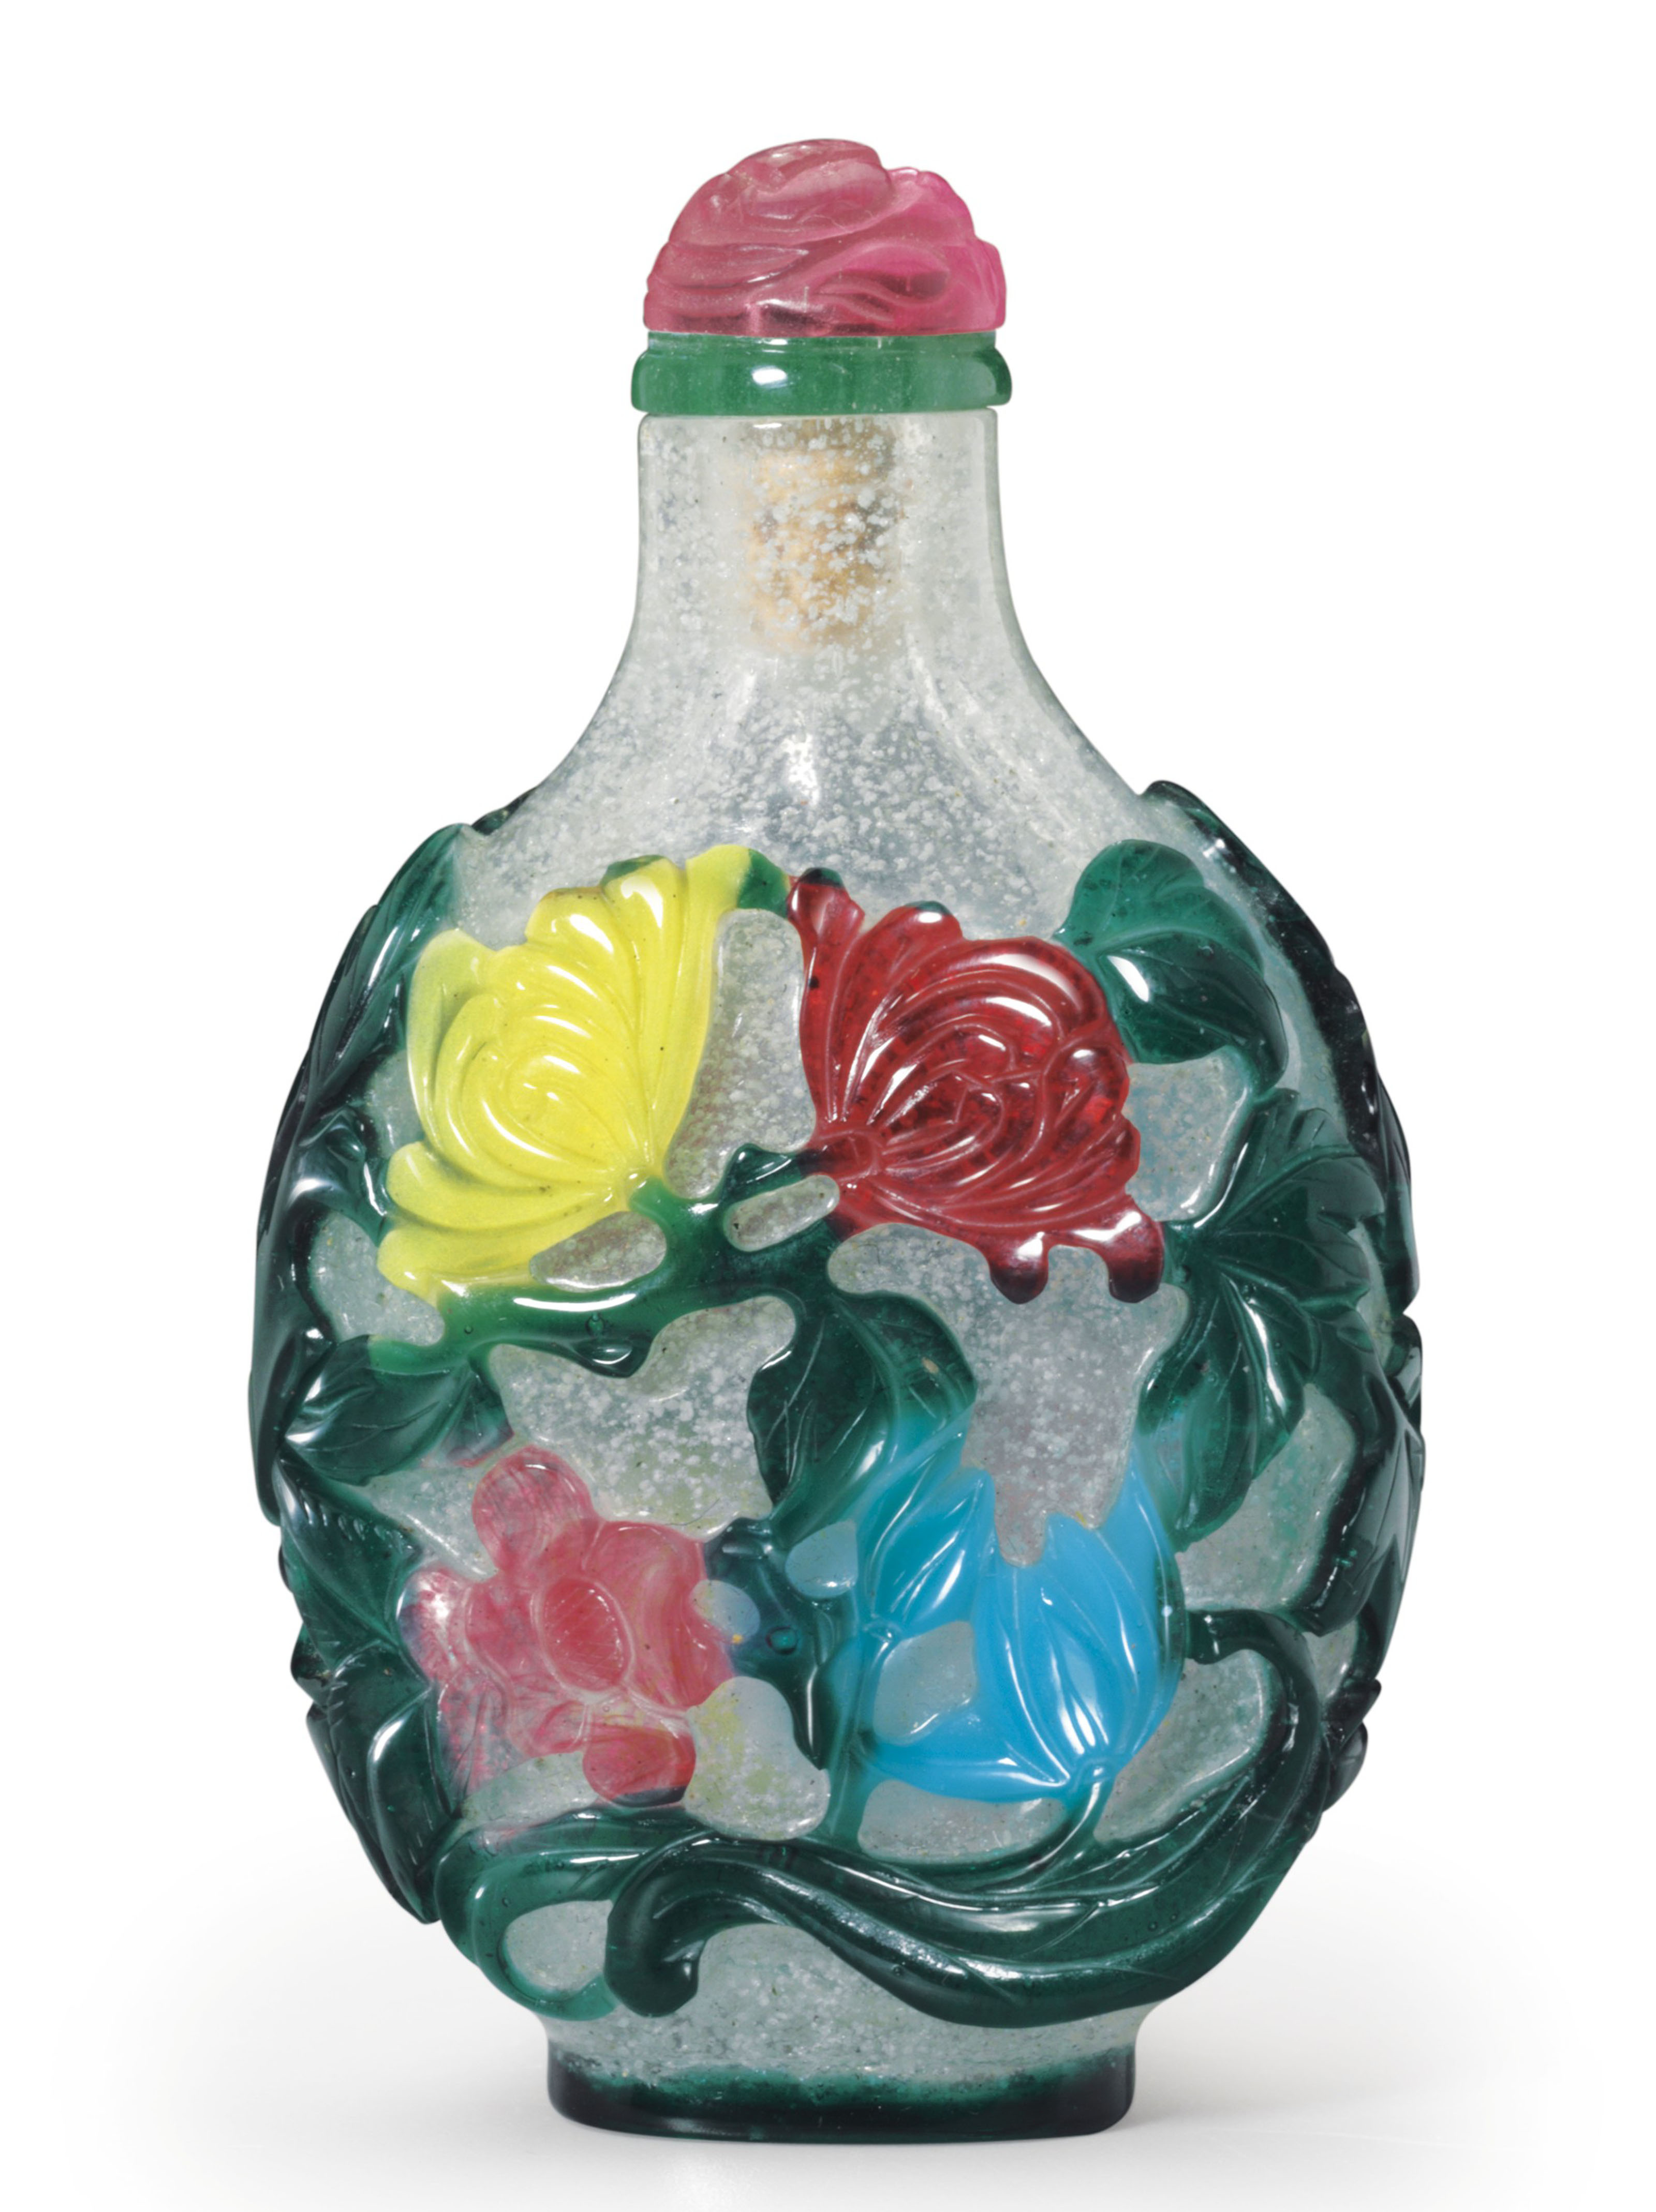 A RARE FIVE-COLOR OVERLAY CLEAR GLASS SNUFF BOTTLE